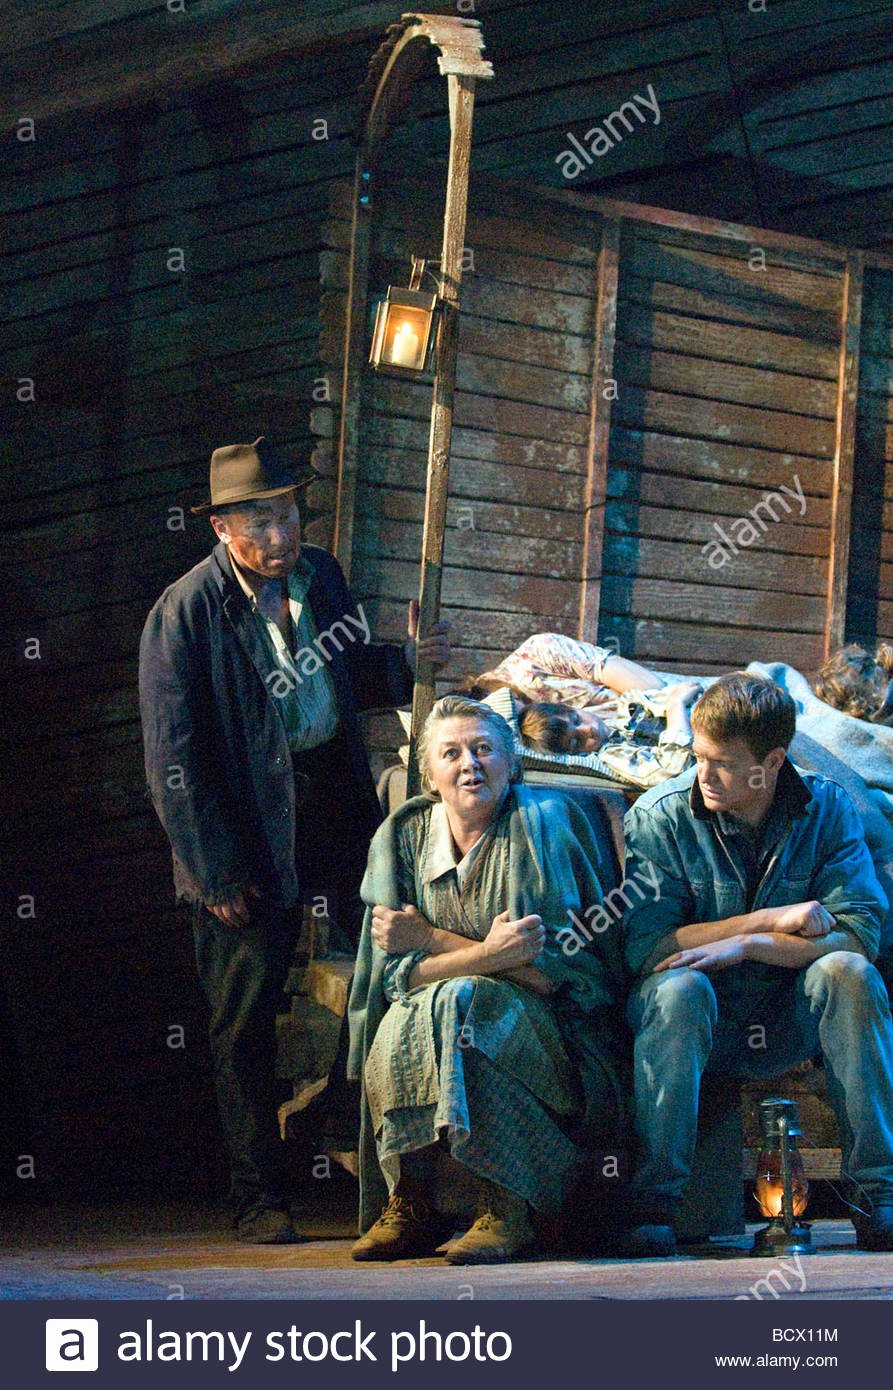 Grapes Of Wrath Litcharts Elegant Ma Joad Ma Joad Timeline In the Grapes Of Wrath 2019 02 13